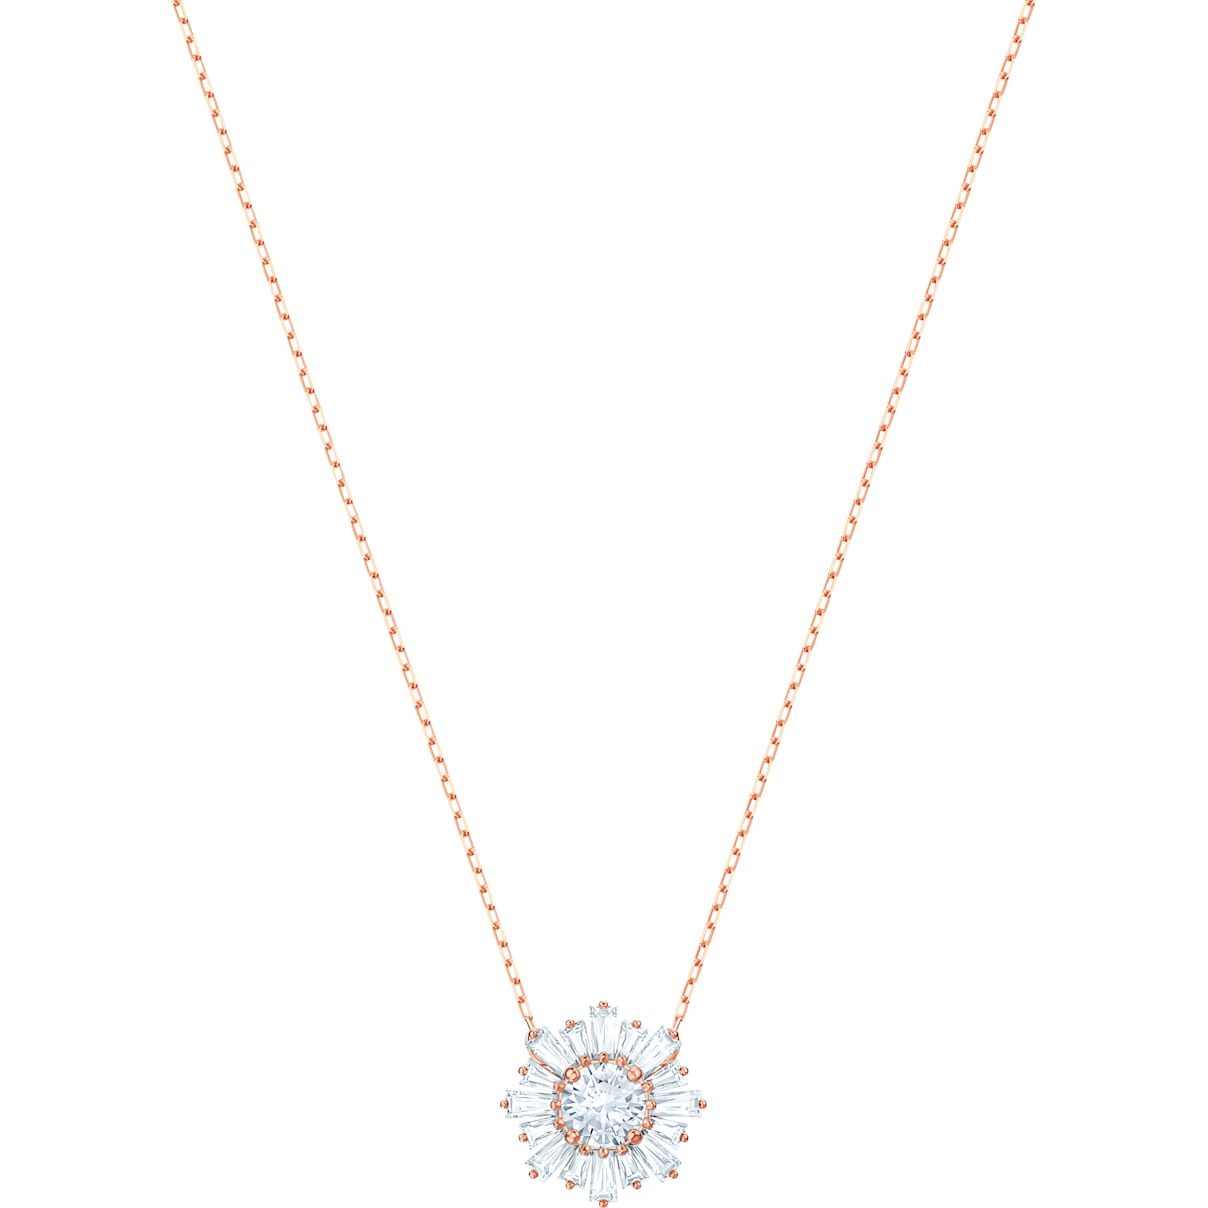 Swarovski Sunshine Pendant, White, Rose-gold tone plated